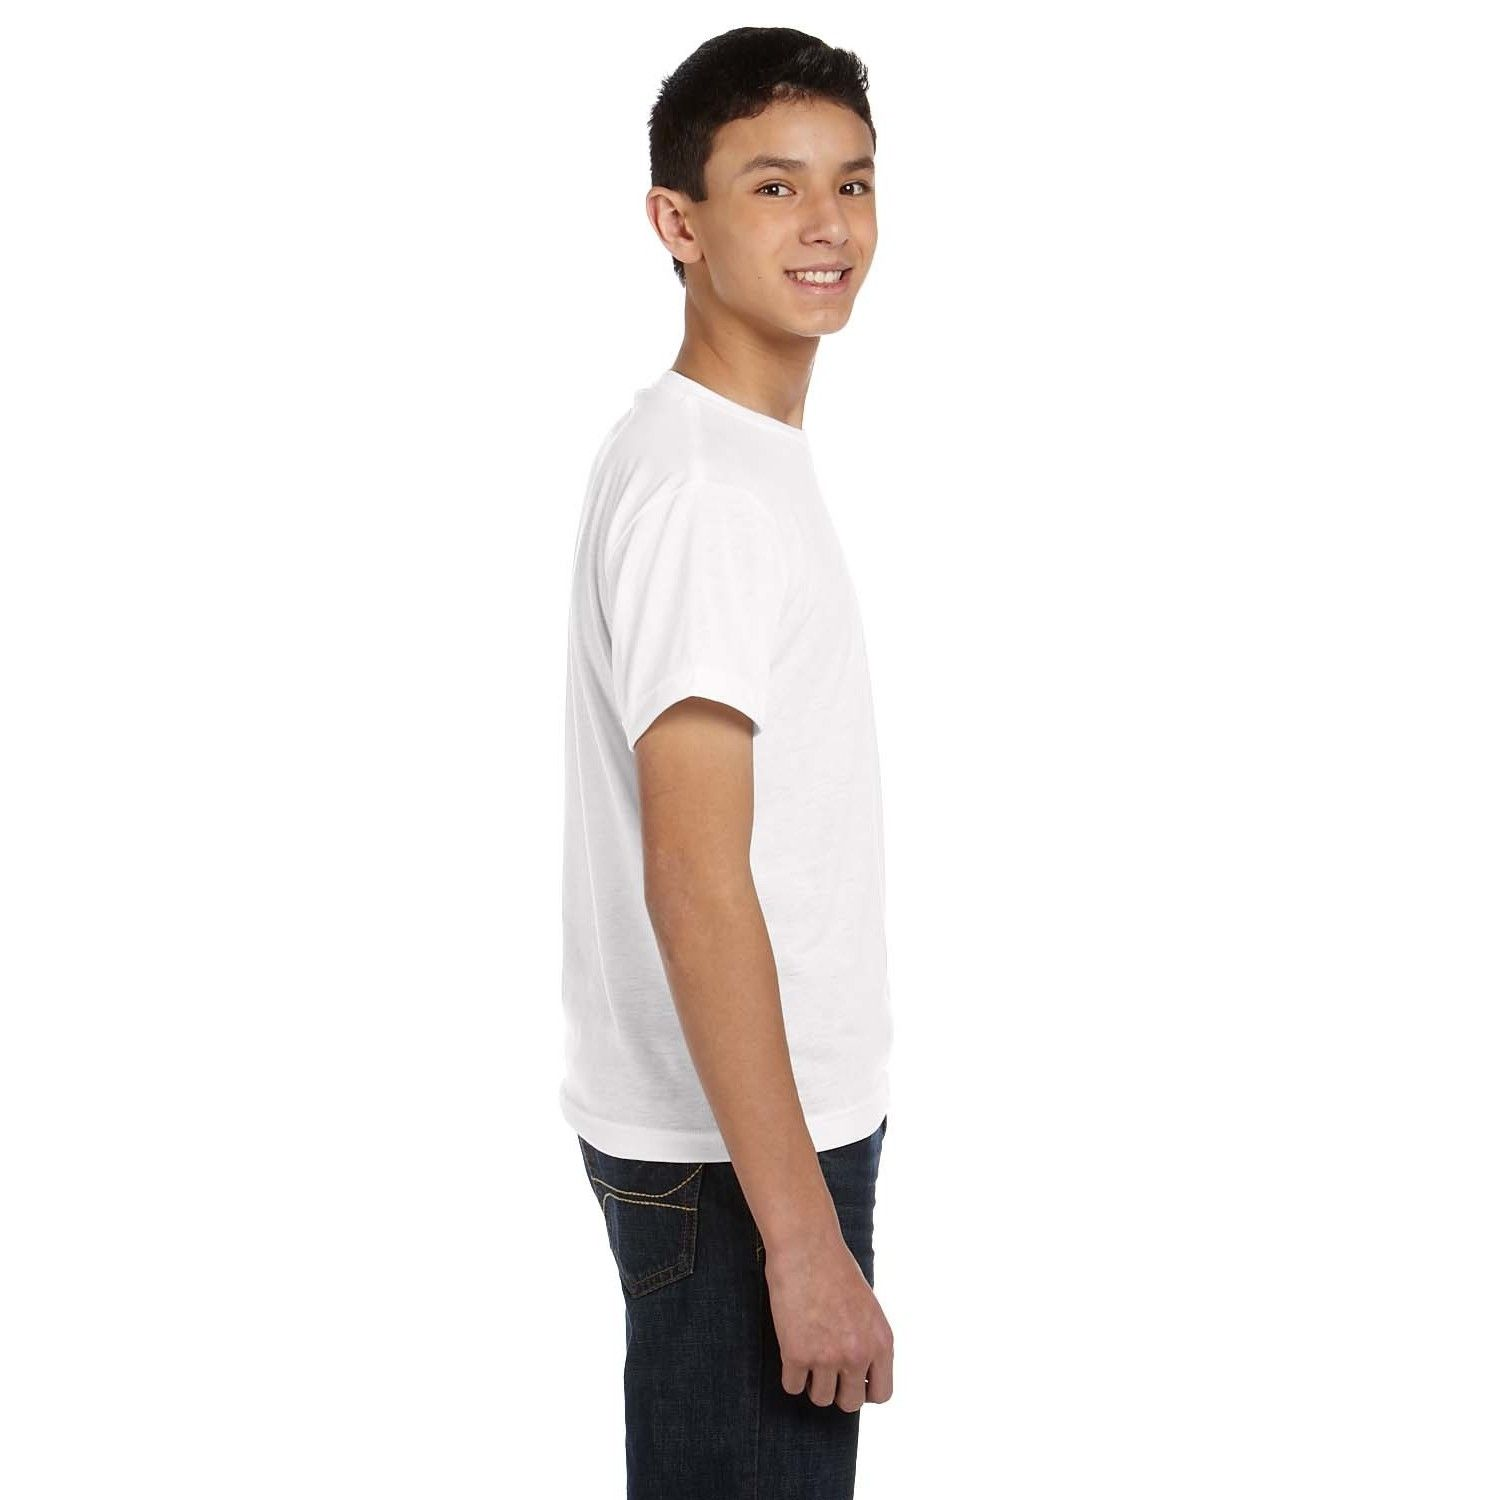 Sublivie Youth T-shirt